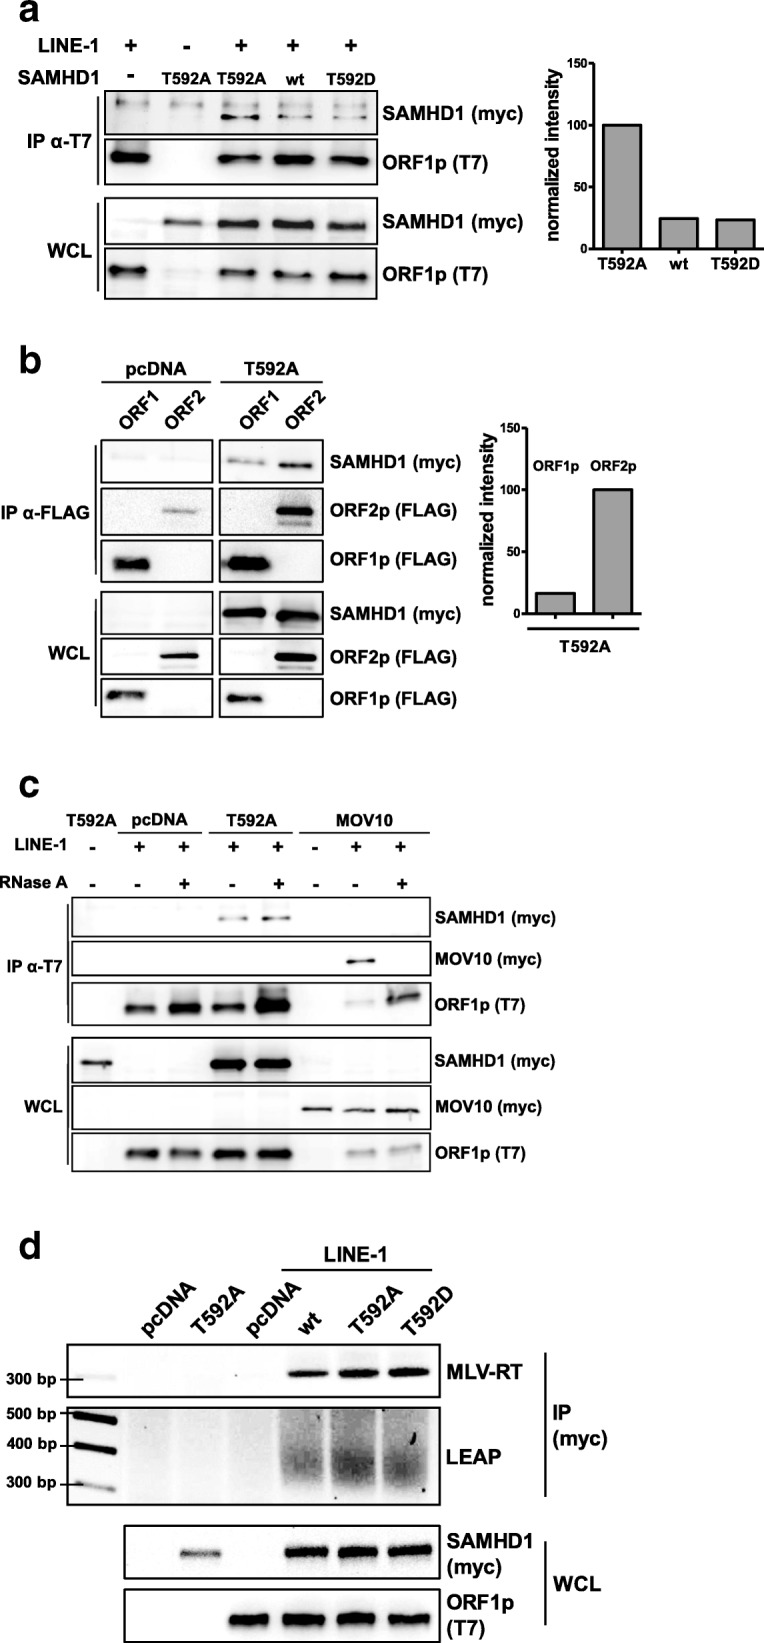 SAMHD1 interacts with LINE-1. a 293T cells were transfected with the L1 expression vector pAD2TE1 together with plasmids encoding wt SAMHD1, SAMHD1 T592A, or SAMHD1 T592D. Two days posttransfection, cells were lysed and ORF1p-T7 was precipitated using anti-T7 antibody coupled to magnetic beads. The precipitates were analyzed by immunoblot. SAMHD1-myc, T592A-myc, and T592D-myc signals were quantified using AIDA Image Analyzer software and normalized on the T7 signal in IP (bait) and the myc signal in WCL (input). b 293T cells were transfected with expression plasmids for L1 ORF1p-FLAG or ORF2p-3xFLAG together with empty vector (pcDNA) or SAMHD1 T592A. Two days posttransfection, cells were lysed and L1 proteins were precipitated with anti-FLAG antibody coupled to magnetic beads. A representative quantification of the precipitated SAMHD1 T592A signal is shown. HRP signals were quantified with AIDA Image analyzer software and normalized on bait signal and WCL input signal. c 293T cells were transfected with a L1 expression plasmid together with empty vector (pcDNA), SAMHD1 T592A, or MOV10. Cells were lysed 2 days posttransfection. Lysates were treated with either <t>RNaseOUT</t> or 15 μg/ml RNaseA prior to ORF1p-T7 precipitation using anti-T7 antibody coupled to magnetic beads. d 293T cells were transfected with empty vector (pcDNA), L1 expression vector and expression plasmids for SAMHD1 wt, T592A, or T592D. Cells were lysed 2 days posttransfection and SAMHD1 was precipitated with an anti-myc antibody coupled to magnetic beads. Subsequently, MLV-RT and LEAP-RT reactions were performed and amplification products were visualized on a 2% agarose gel. Input protein content was controlled by immunoblot. One out of three independent experiments is shown. WCL: Whole cell lysate, IP: immunoprecipitation